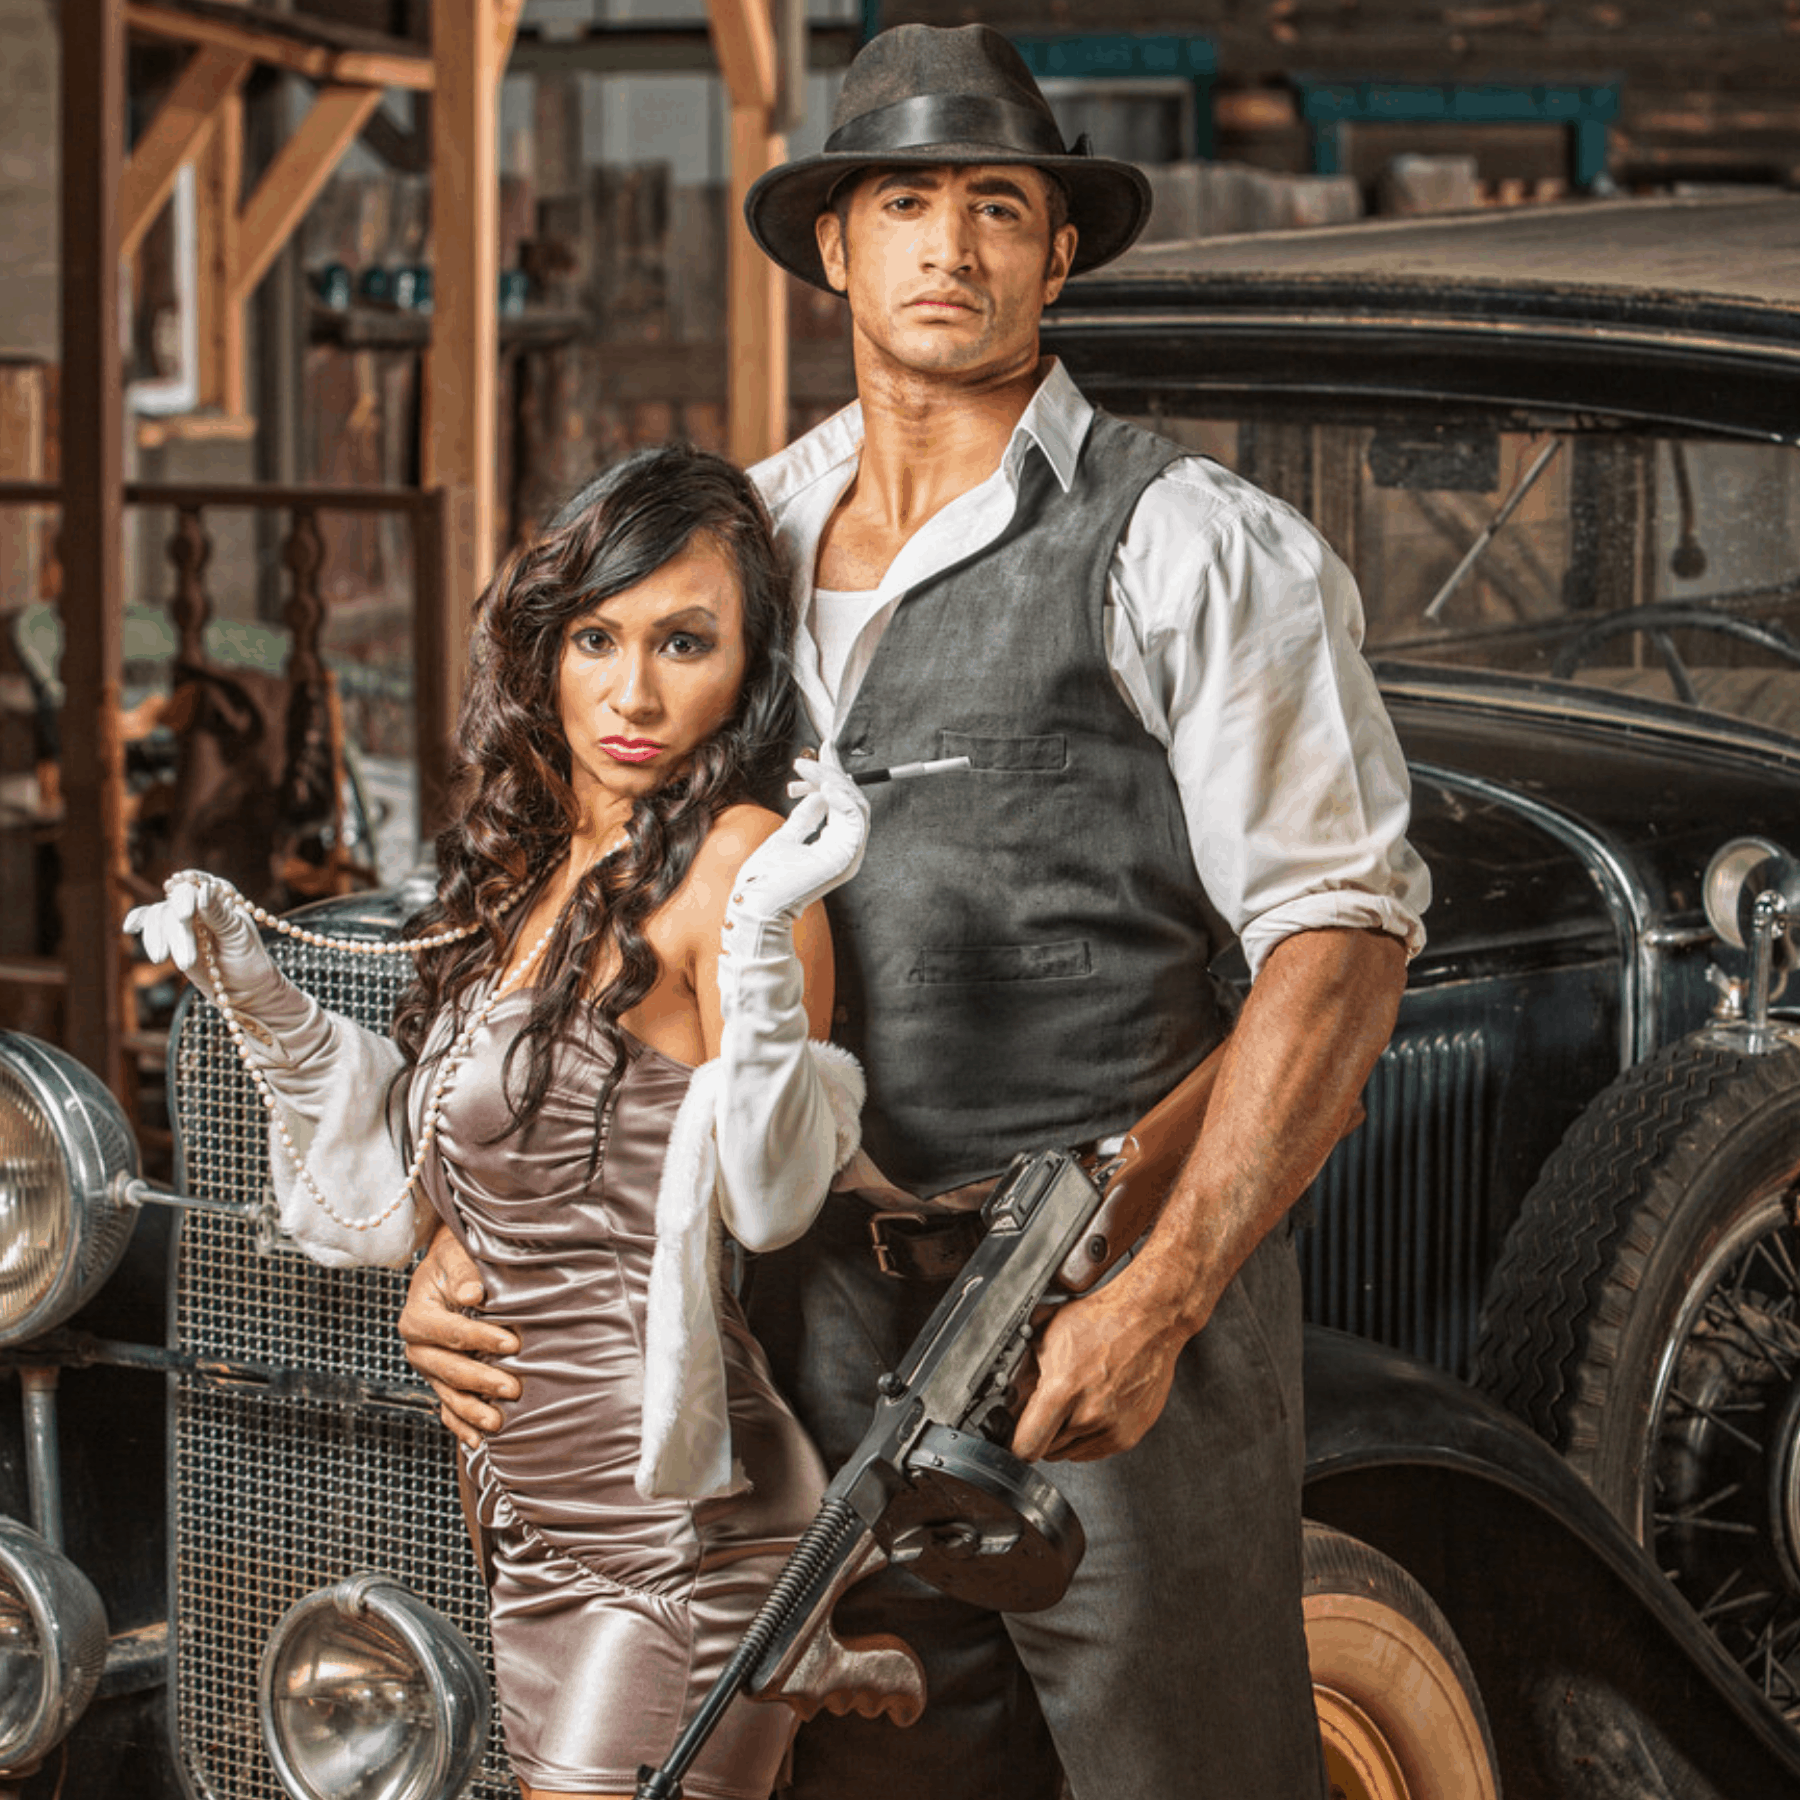 Were Bonnie and Clyde considered heroes?